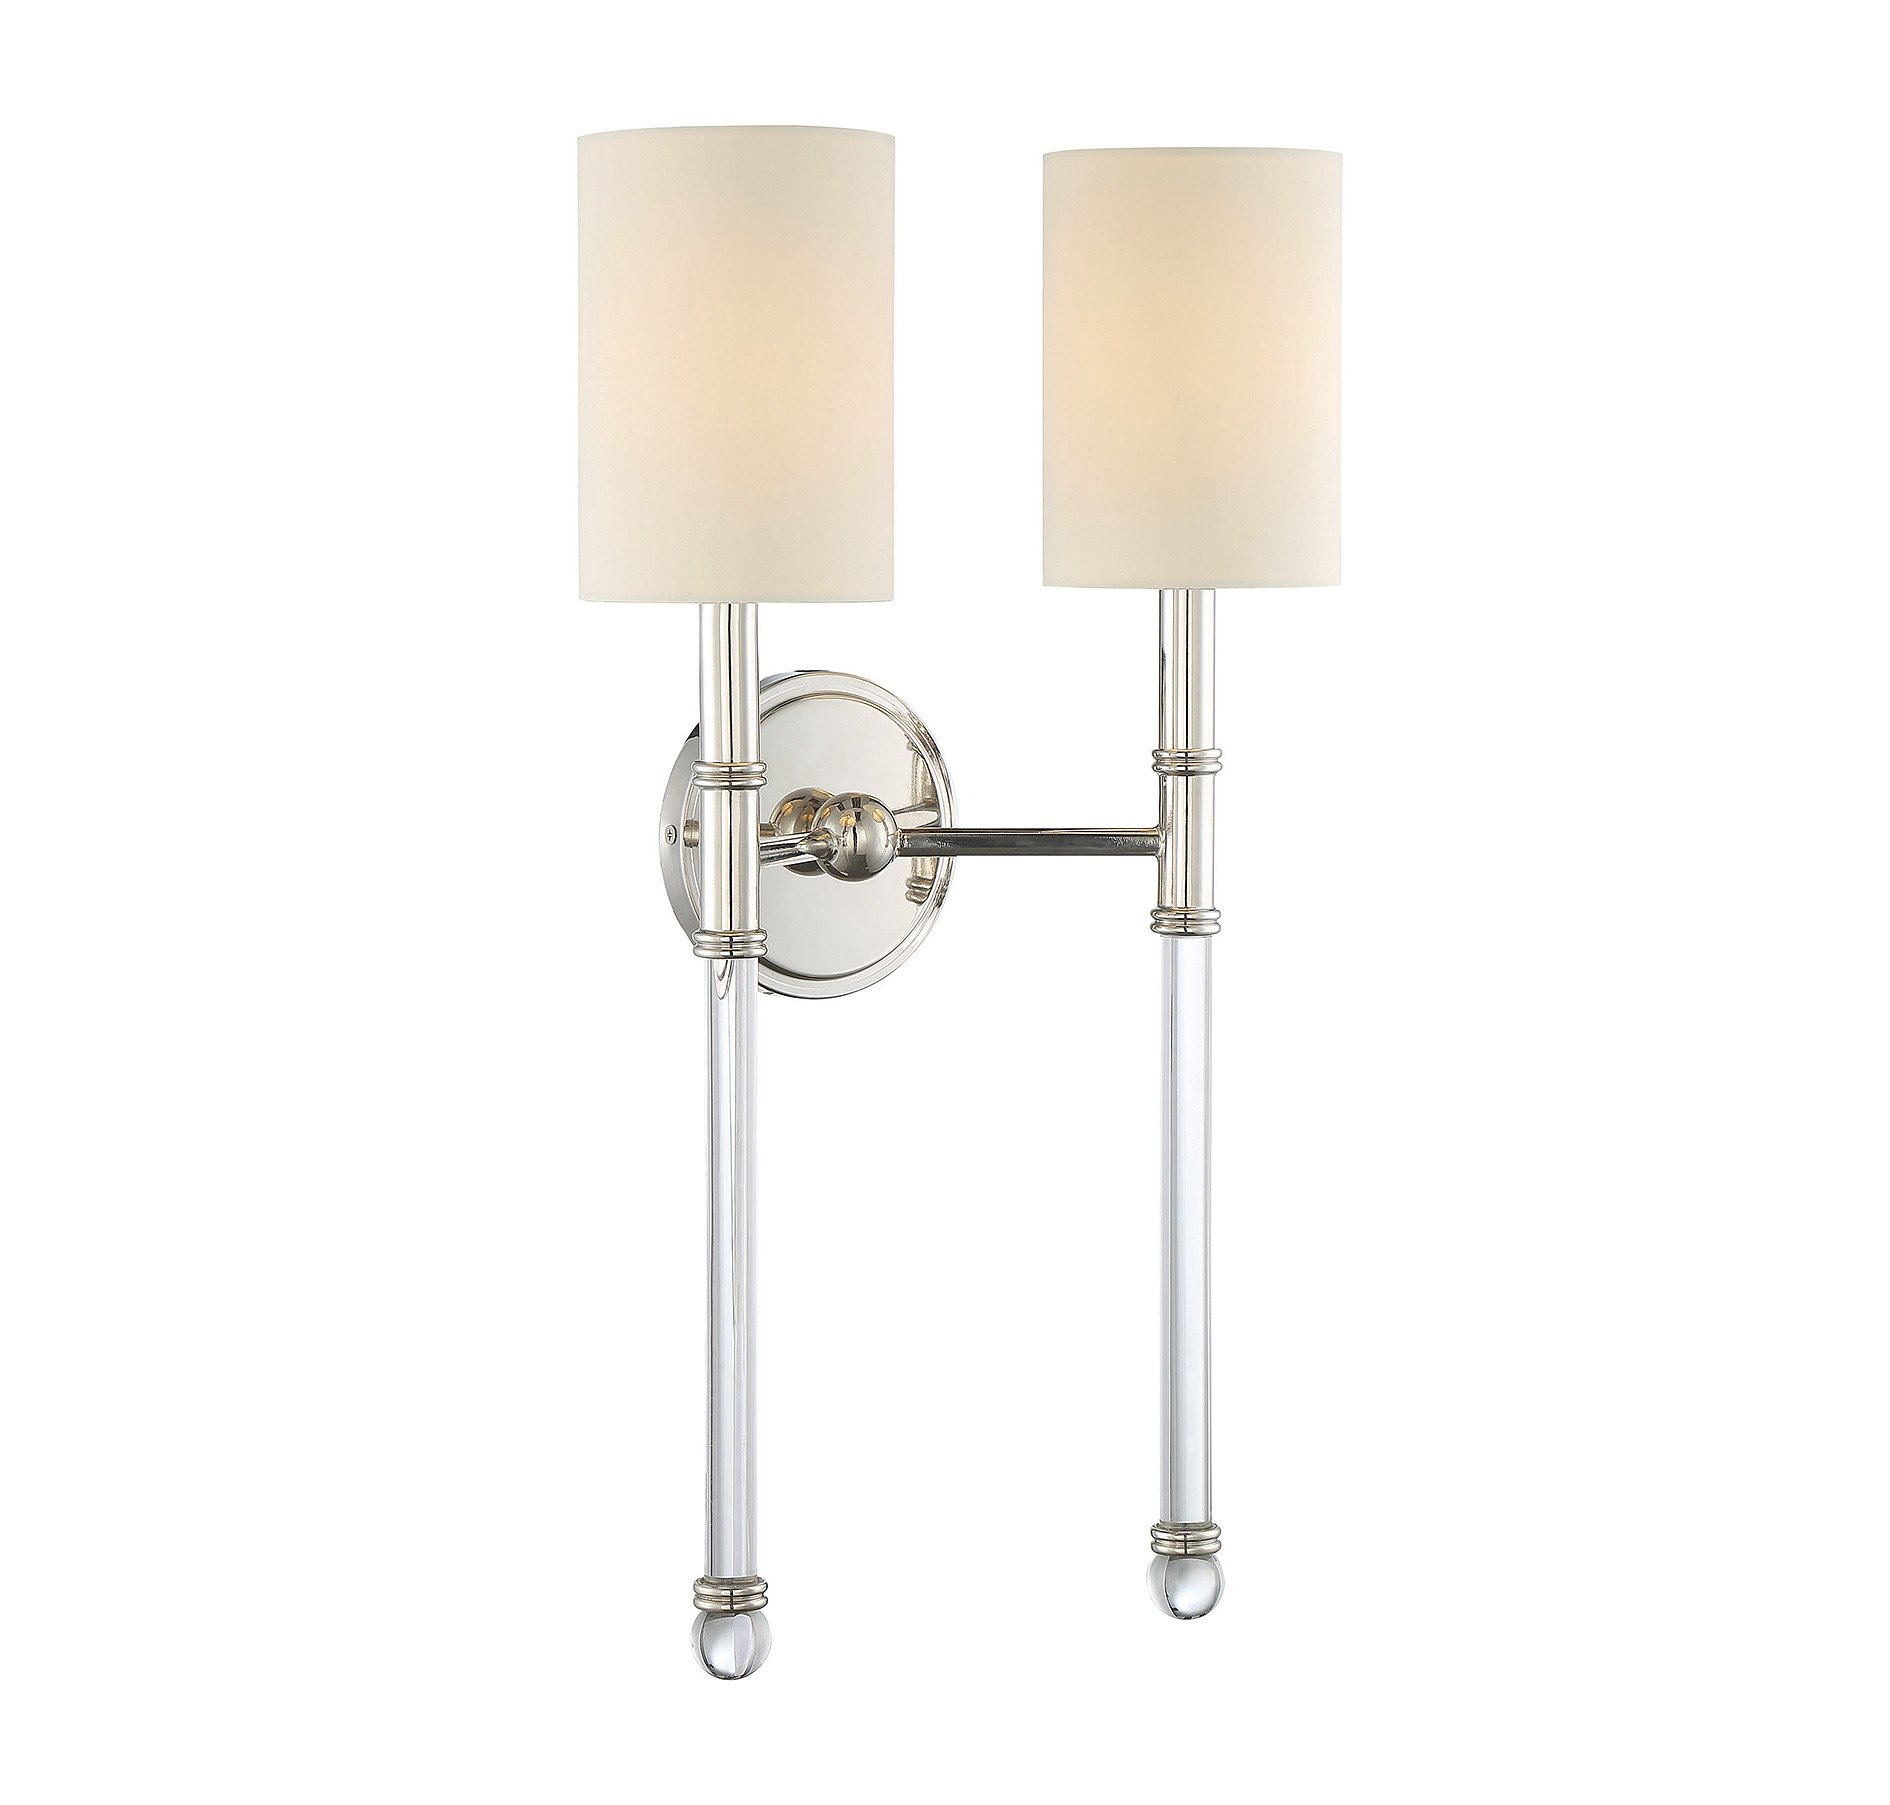 Savoy House 9-103-2-109 Fremont 2-Light Sconce in Polished Nickel by Savoy House